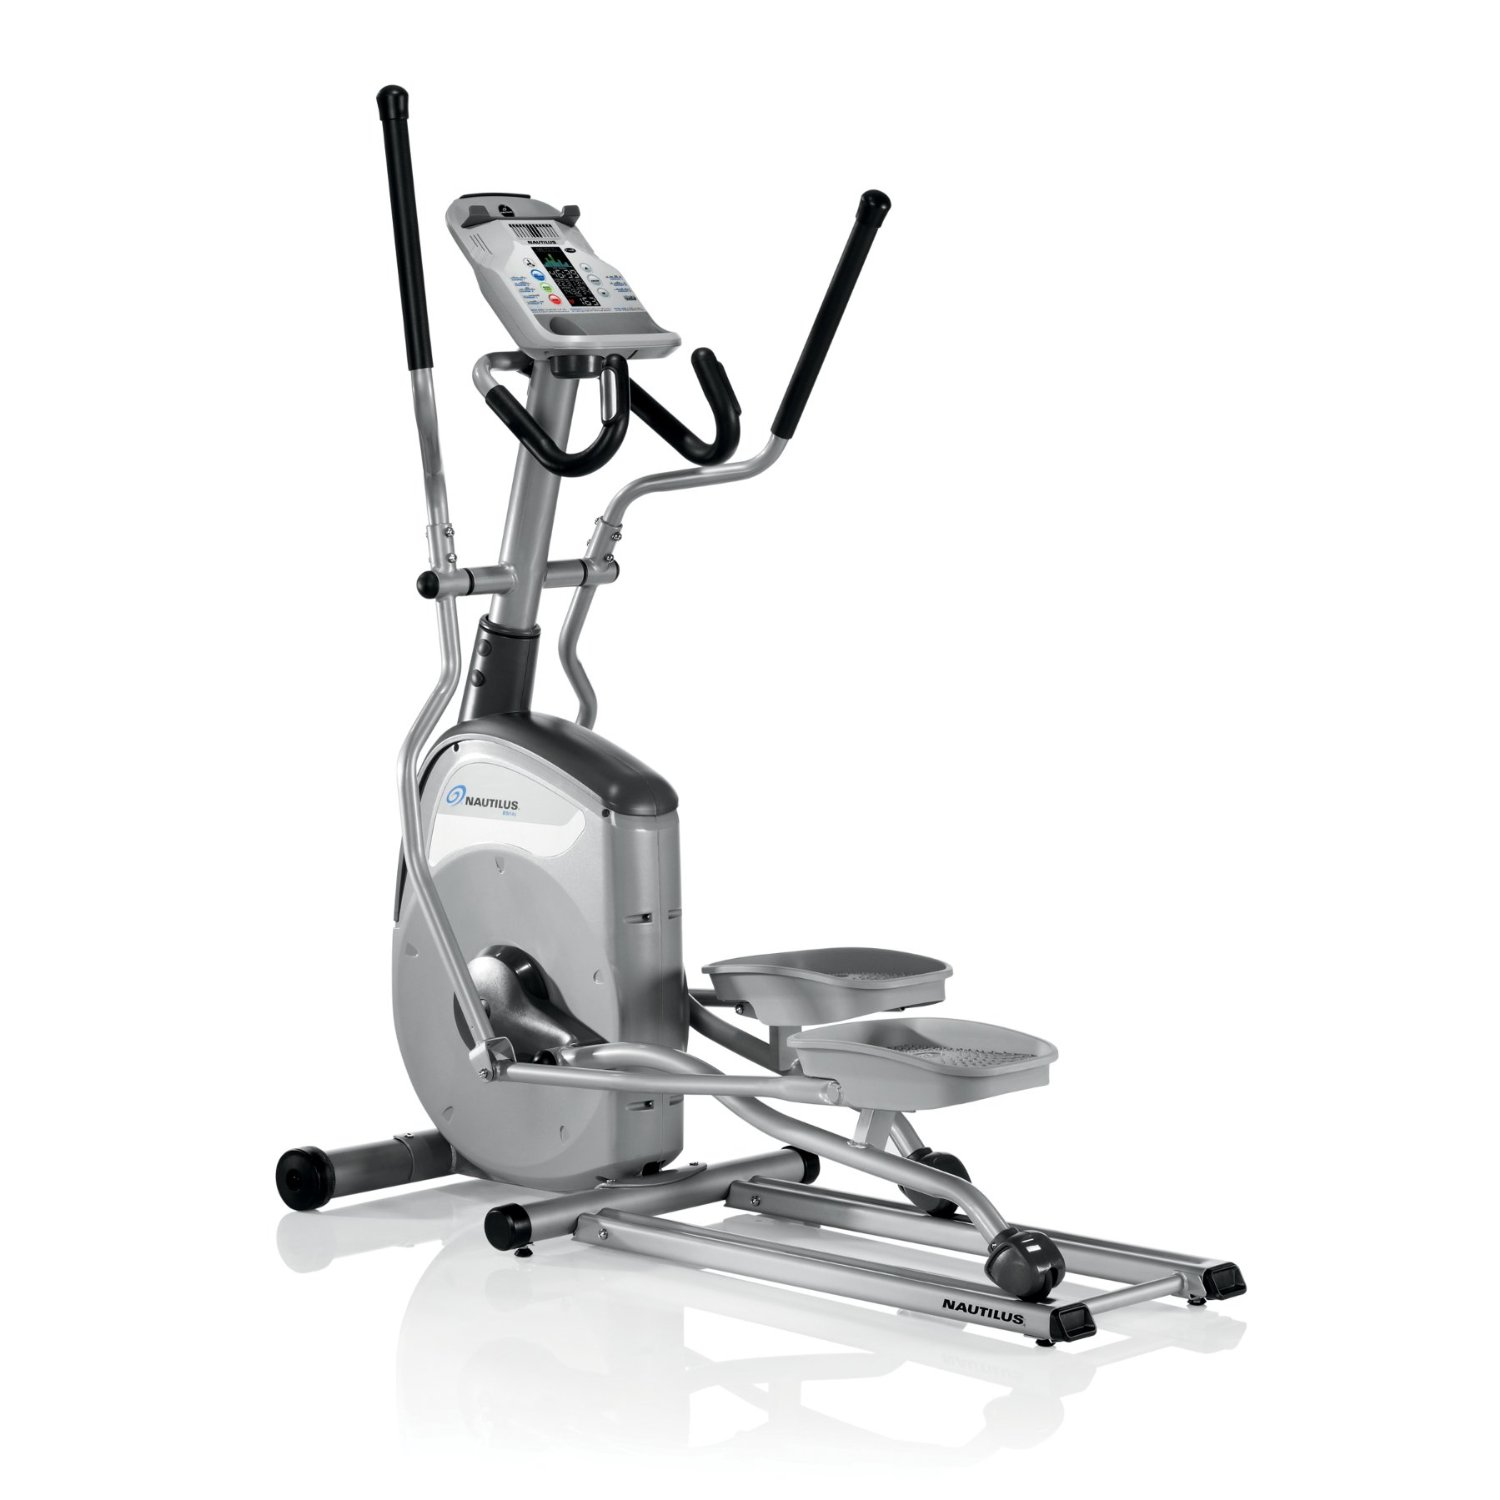 Nautilus E514c Elliptical Trainer (2013)